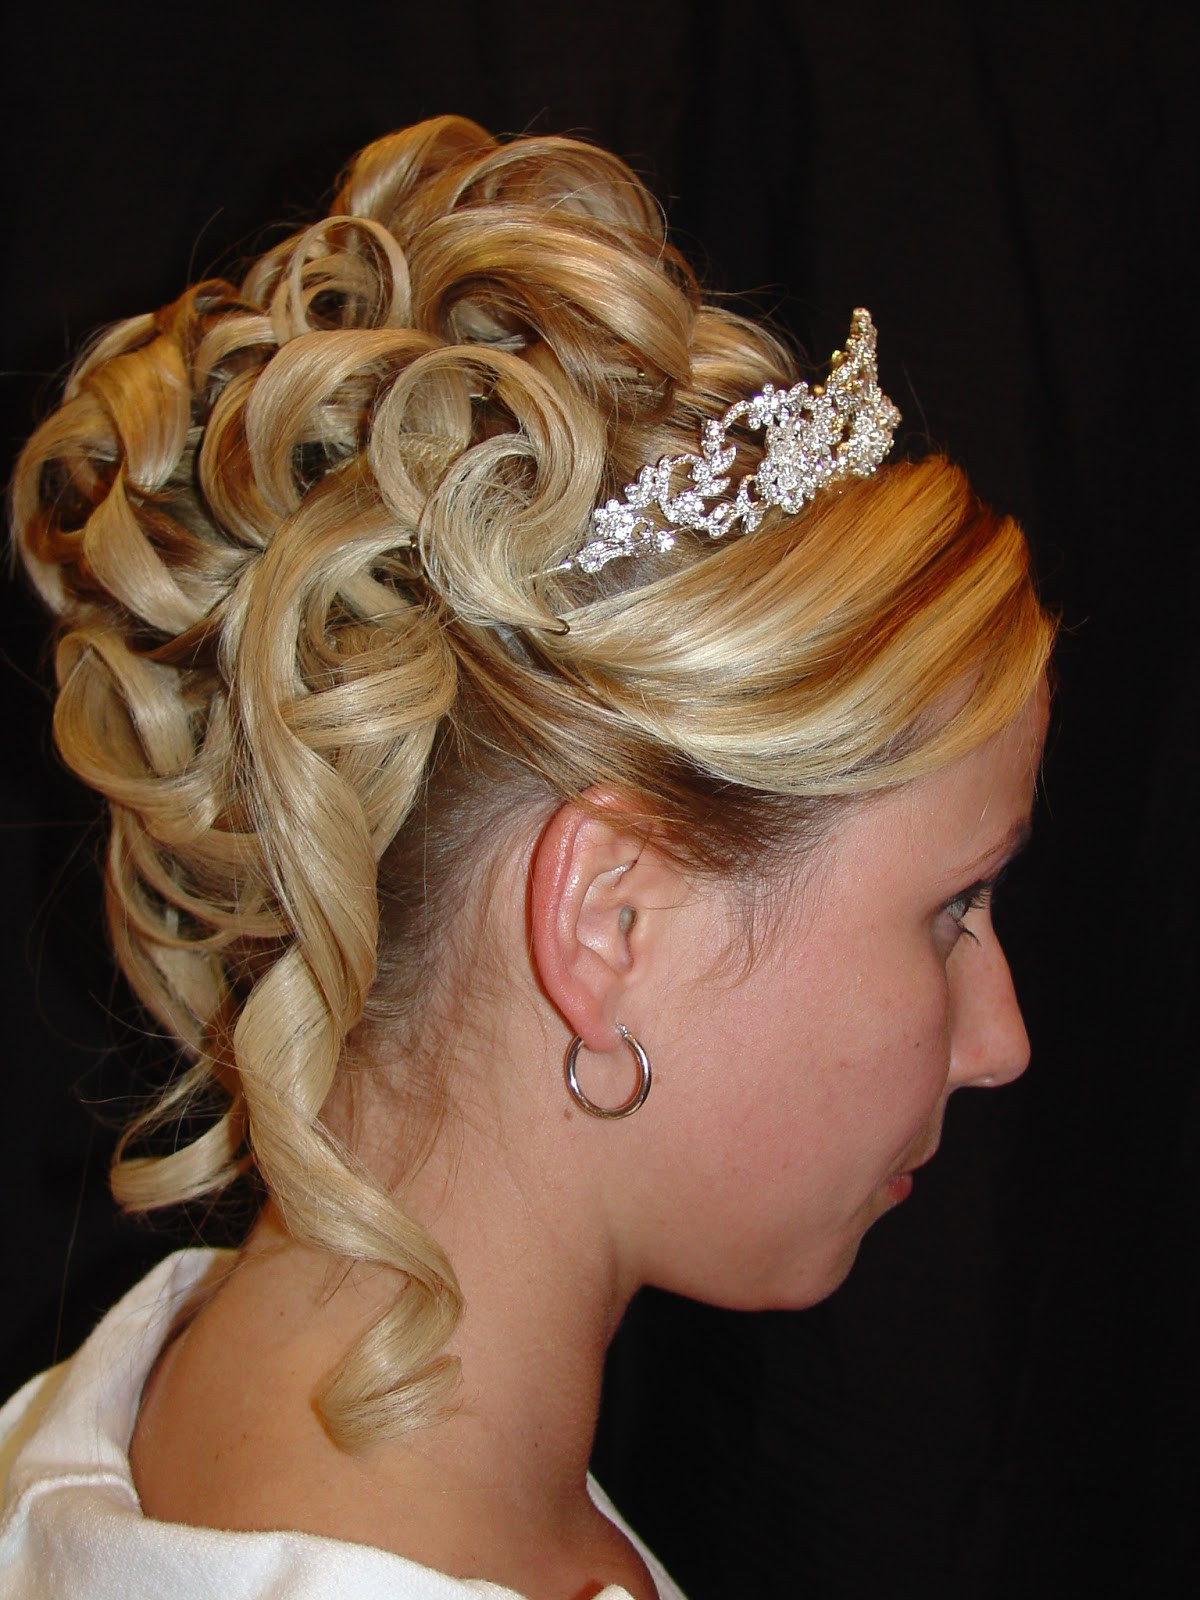 Best ideas about Updo Hairstyle . Save or Pin Style Dhoom Special Events UpDo Wedding Hairstyles Now.